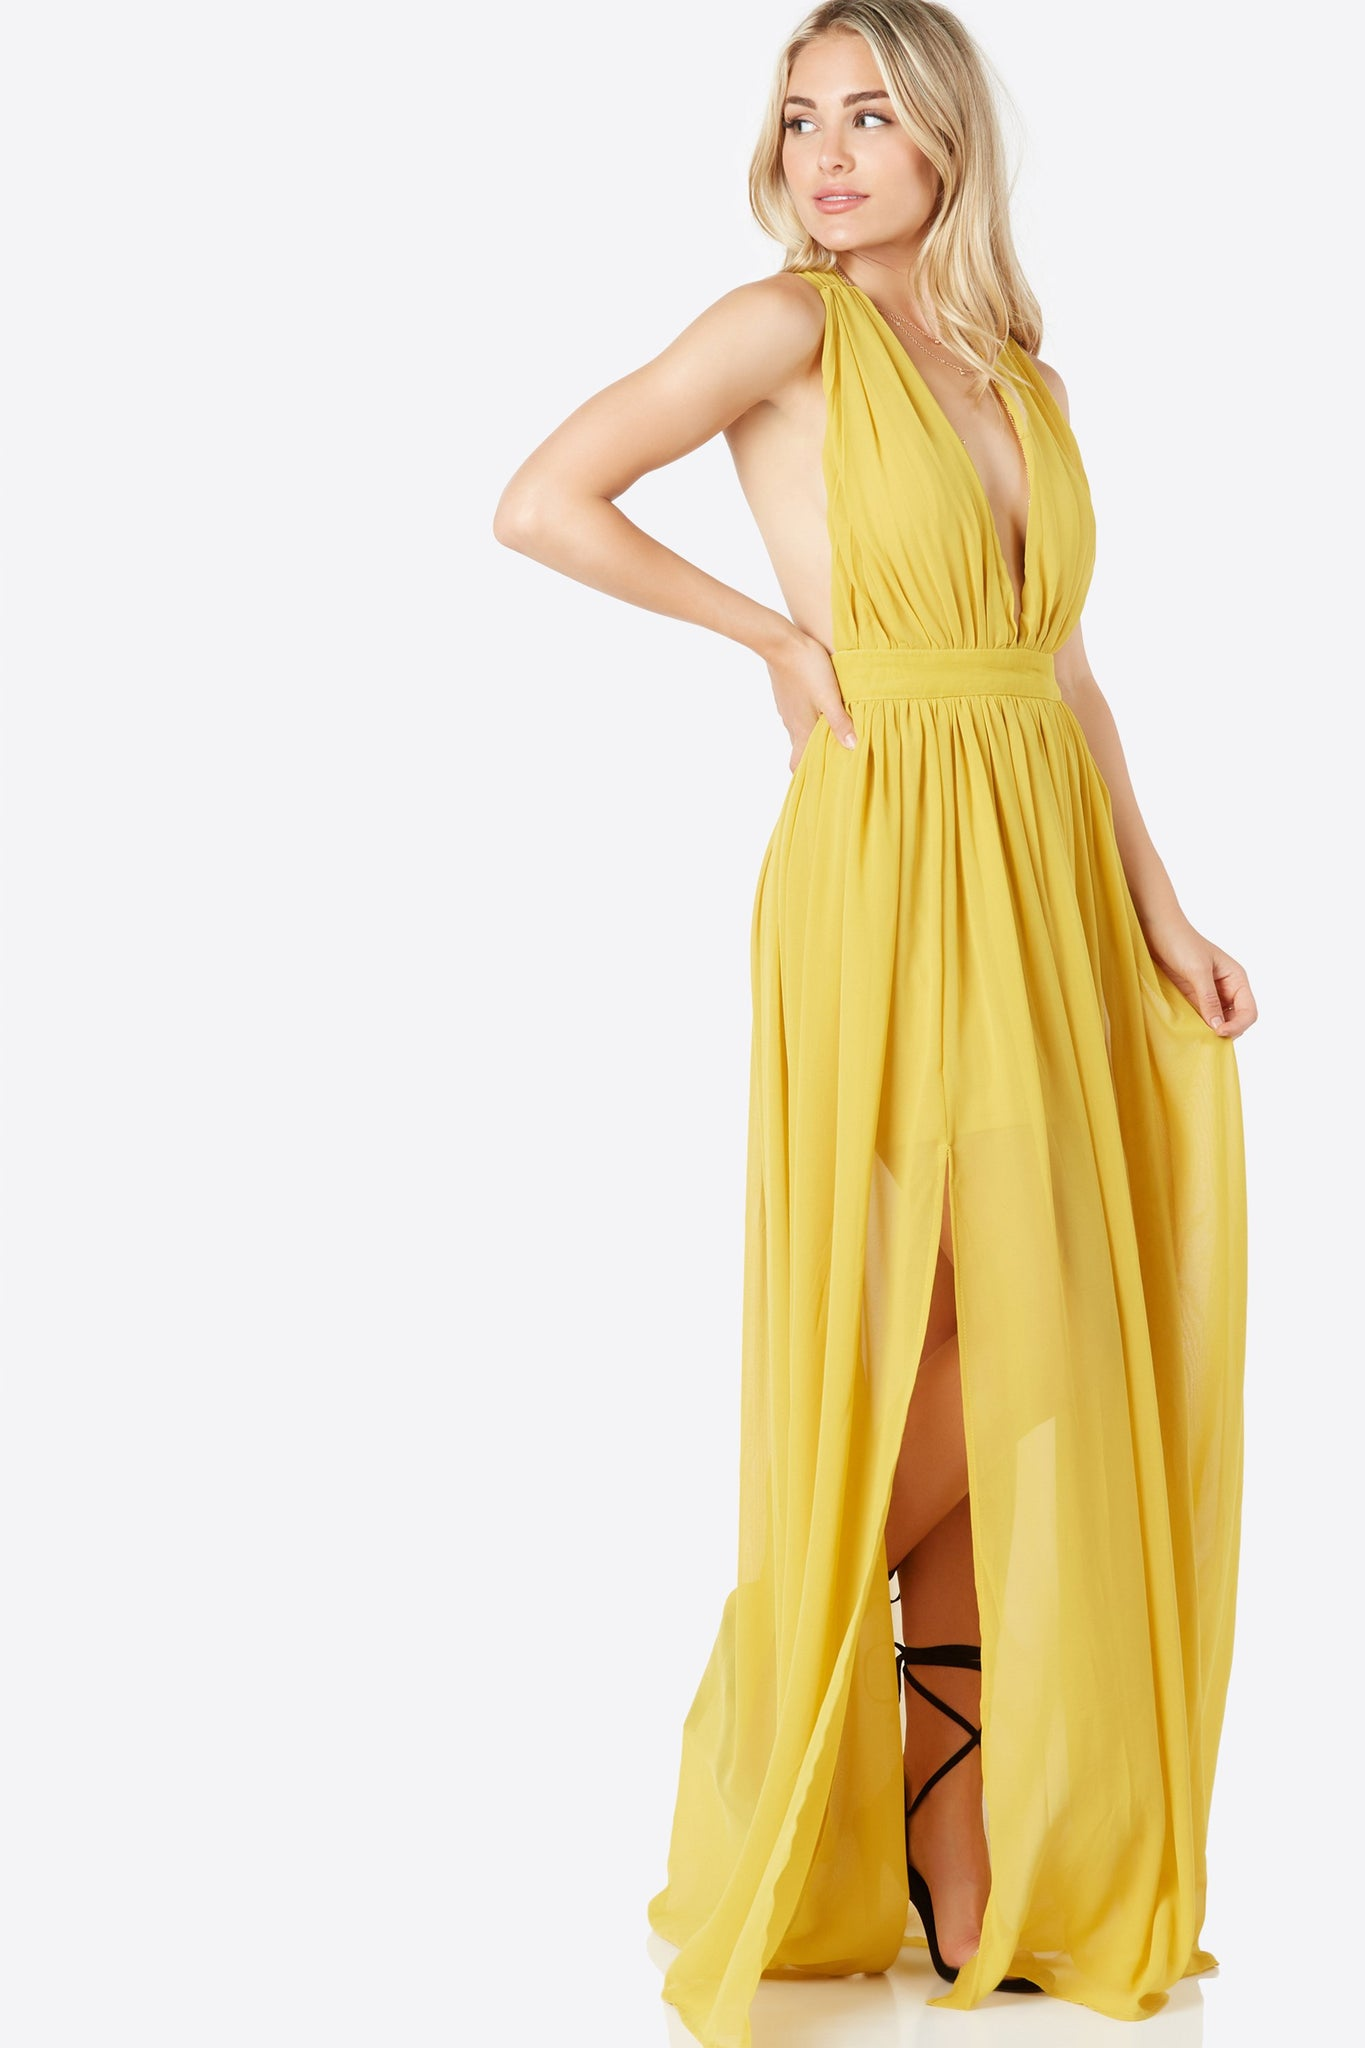 Stunning chiffon maxi dress with plunging neckline. Padded bust with flowy hem and slit detailing. Twisted strap design in back with hidden zip closure.